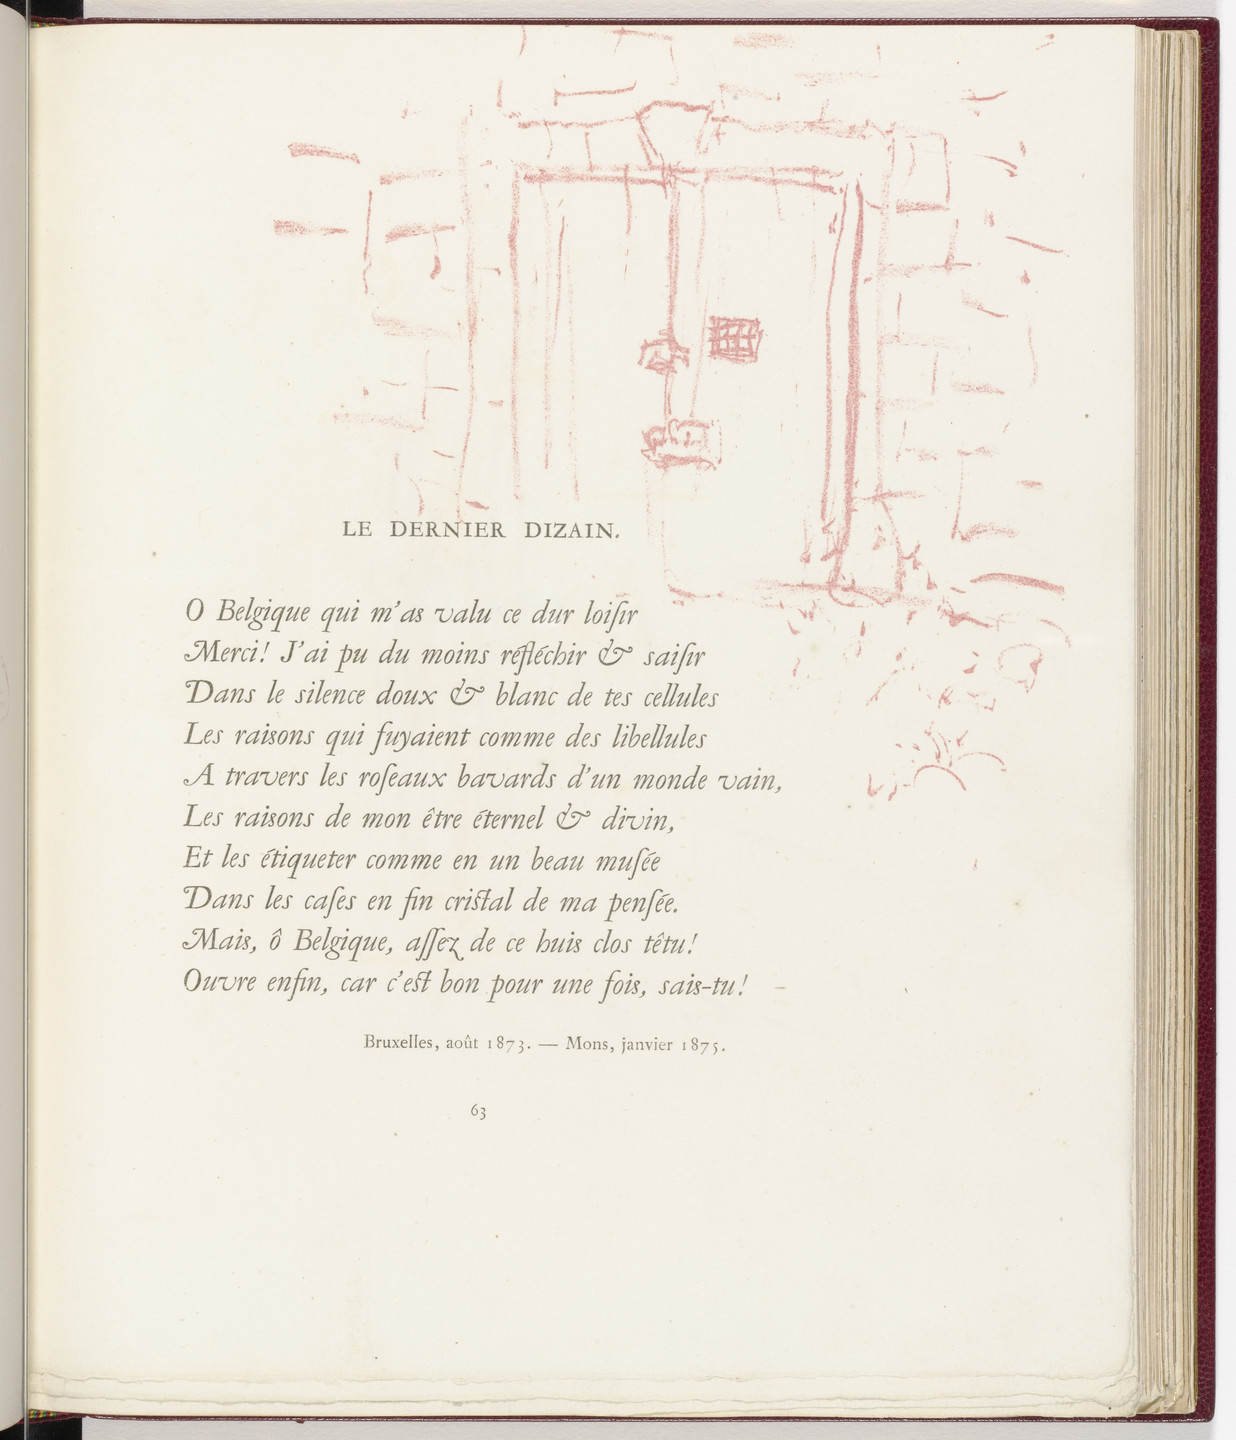 Pierre Bonnard. In-text plate (page 63) from Parallèlement (In Parallel). 1900